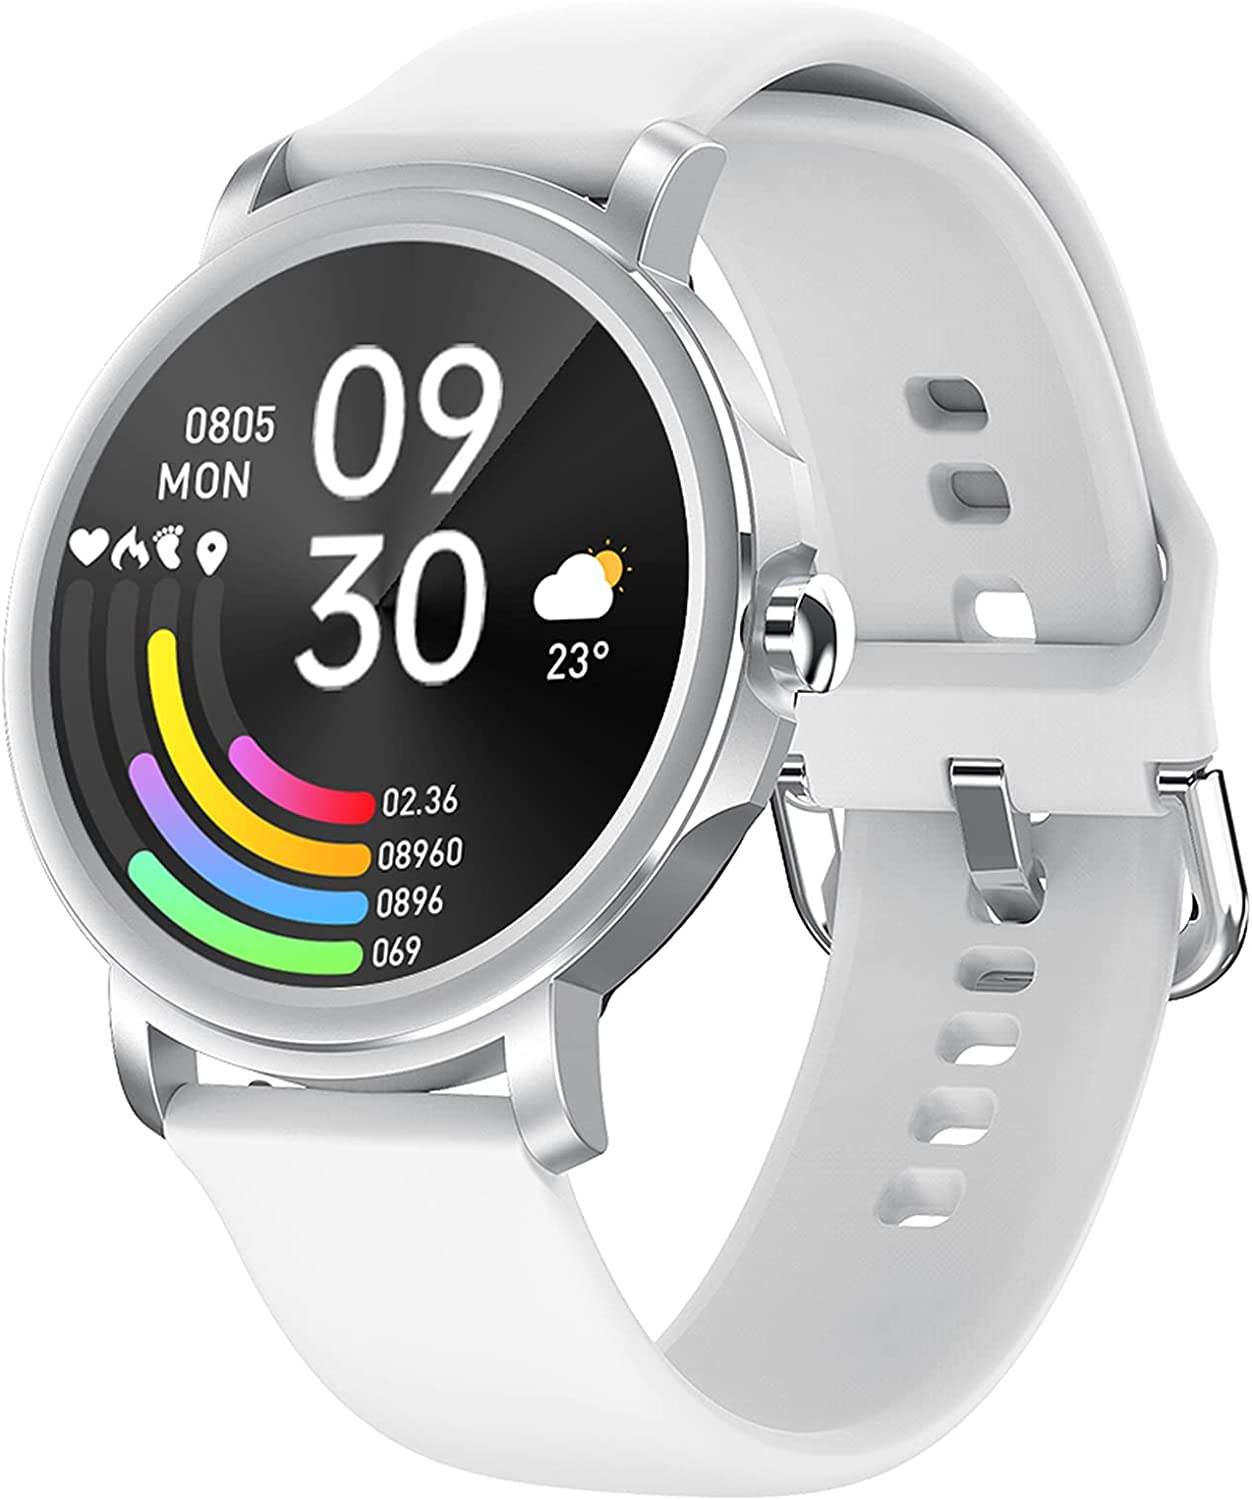 QFSLR Smart Time sale Watch Waterproof Smartwatch Full Fitness Screen Product Ouch